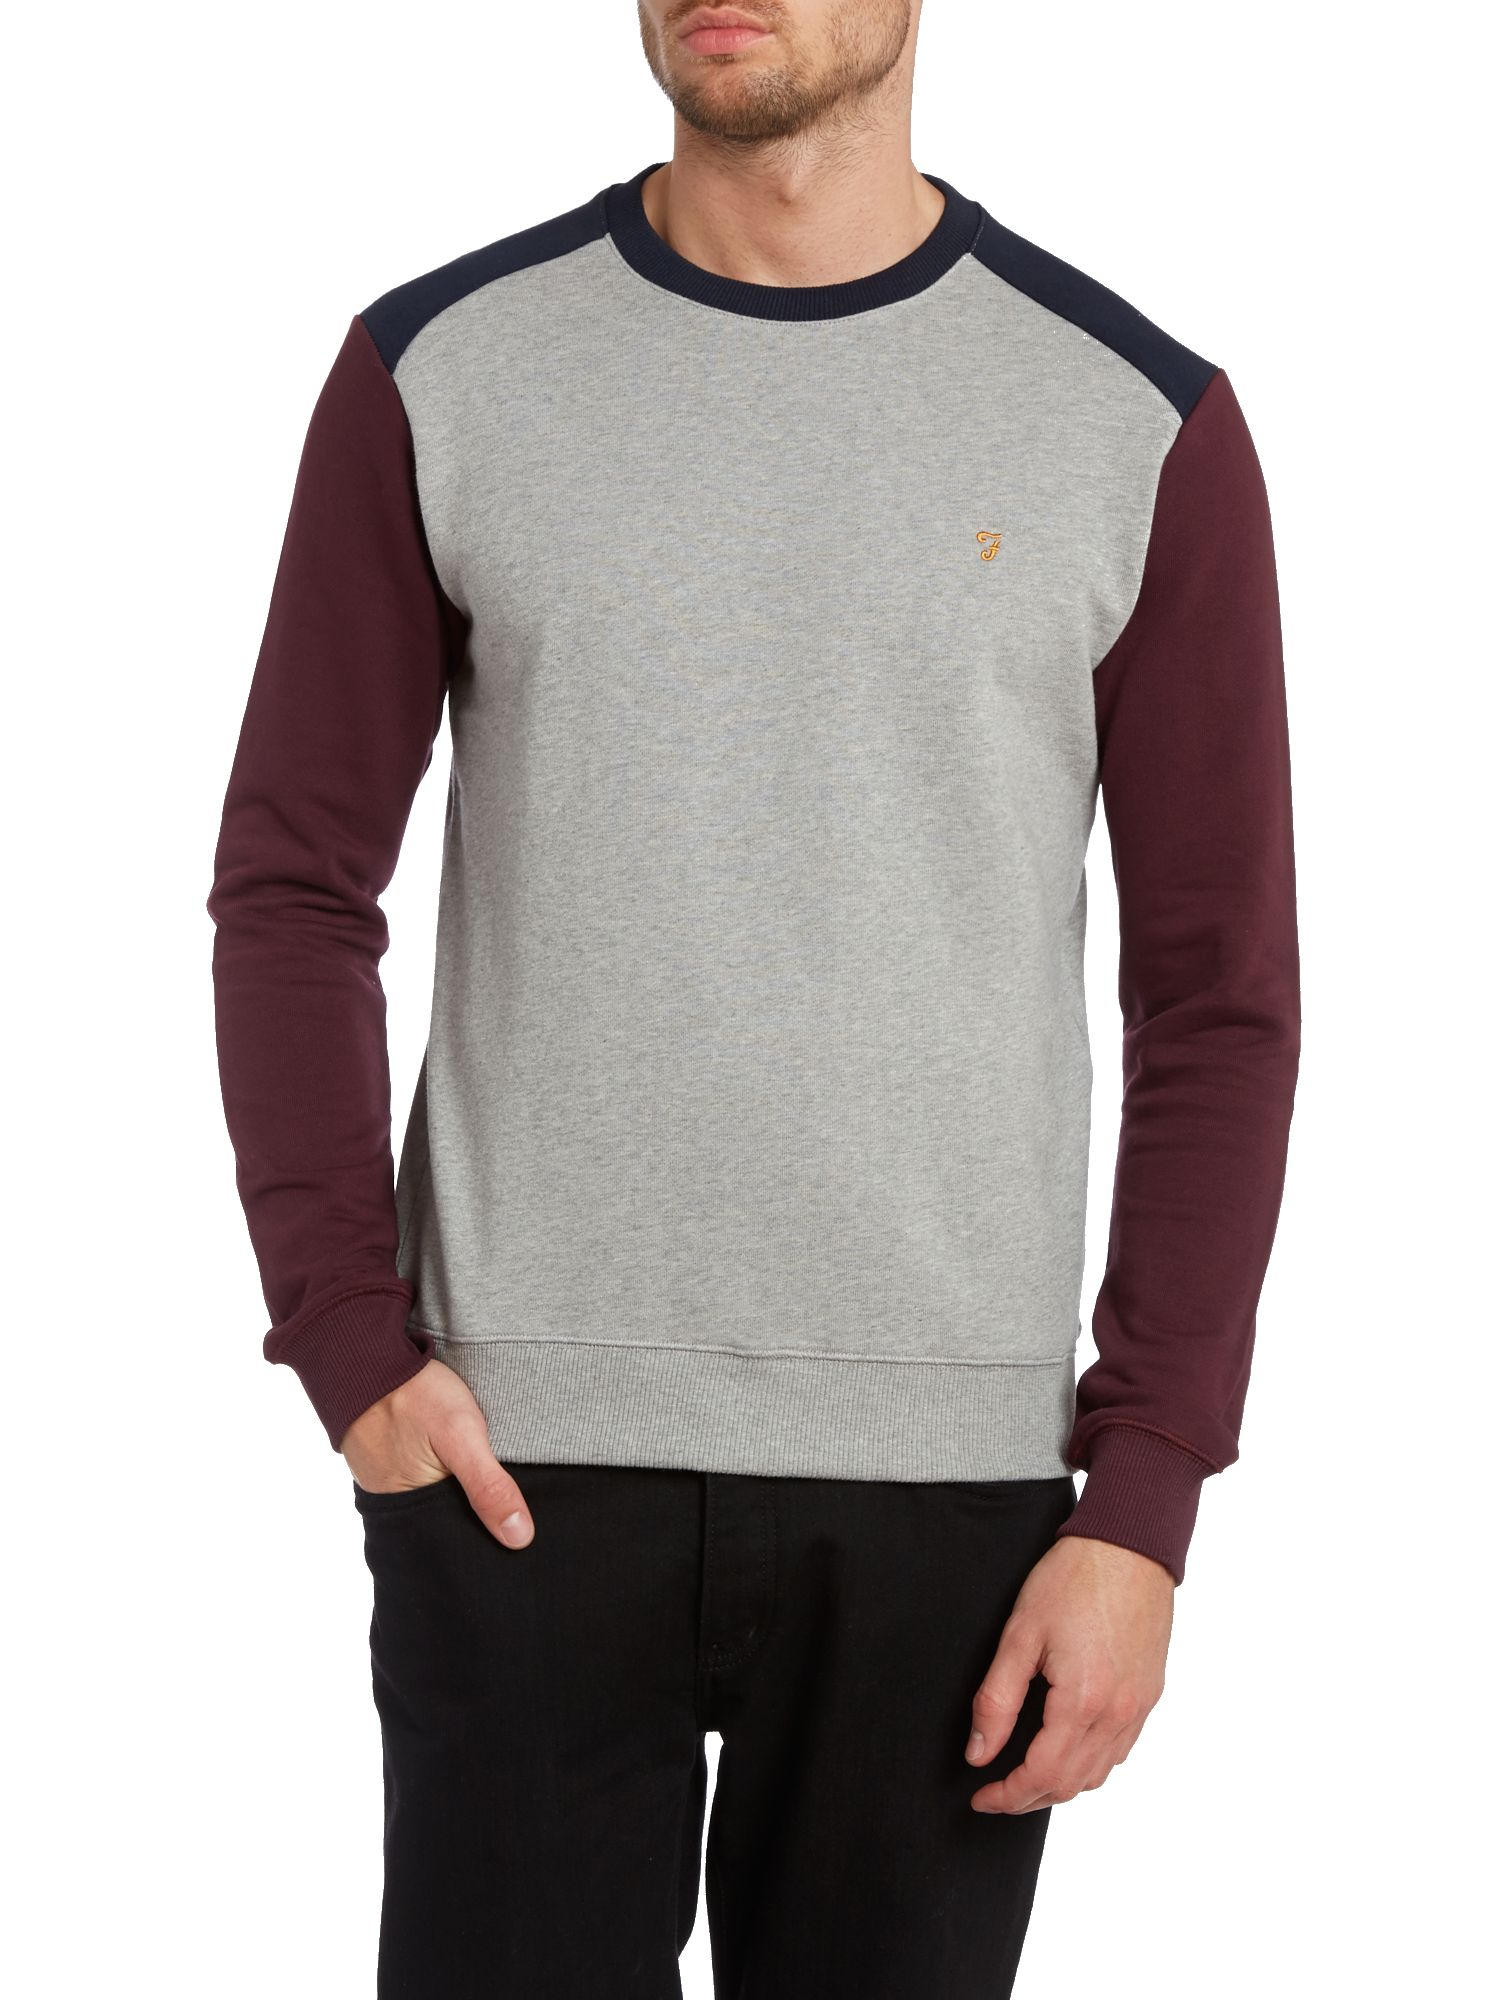 Murie crew neck panel block sweatshirt